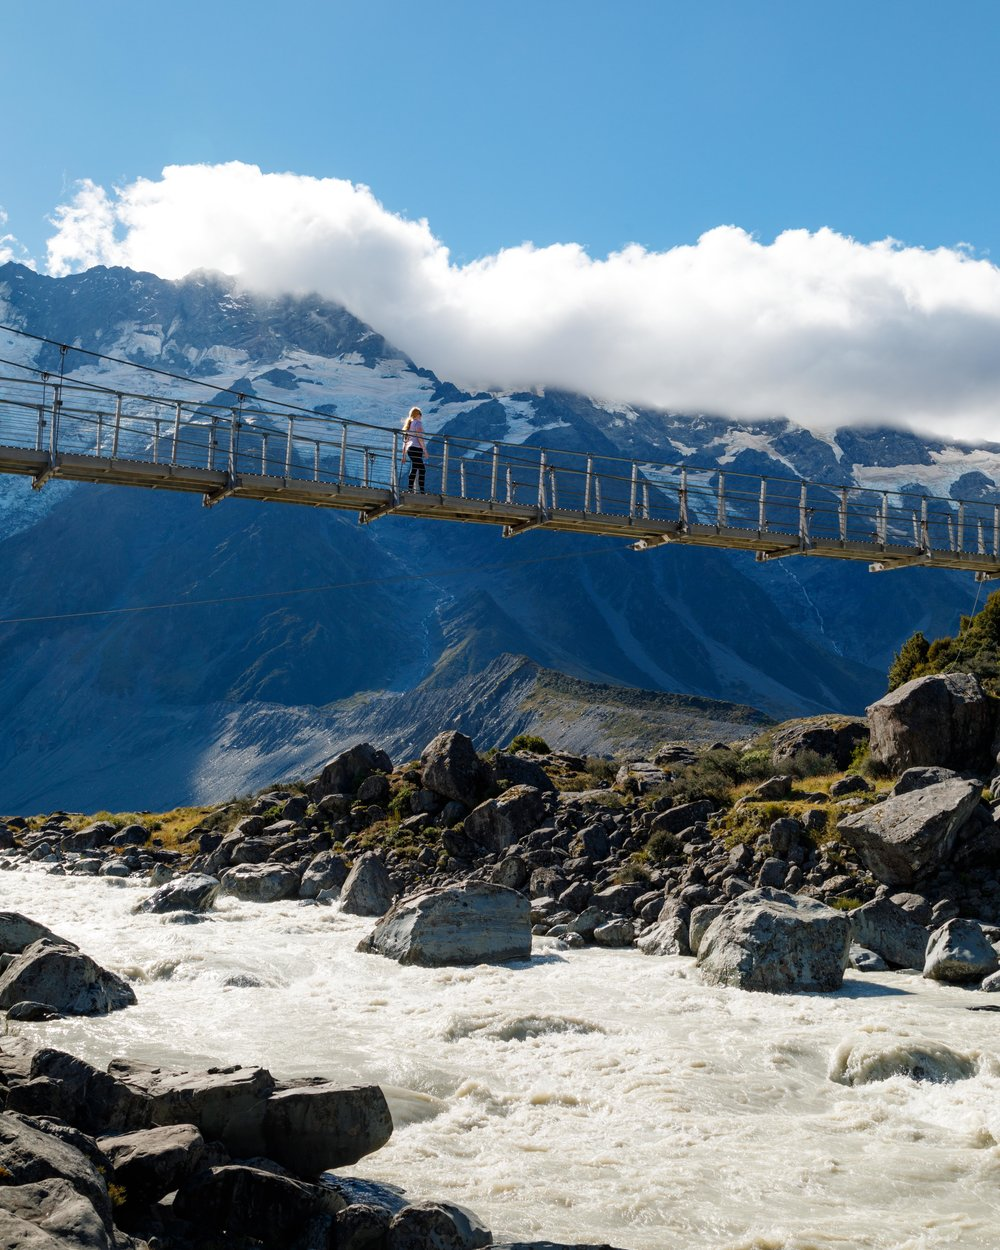 2 week New Zealand South Island Itinerary: Hooker Valley Track